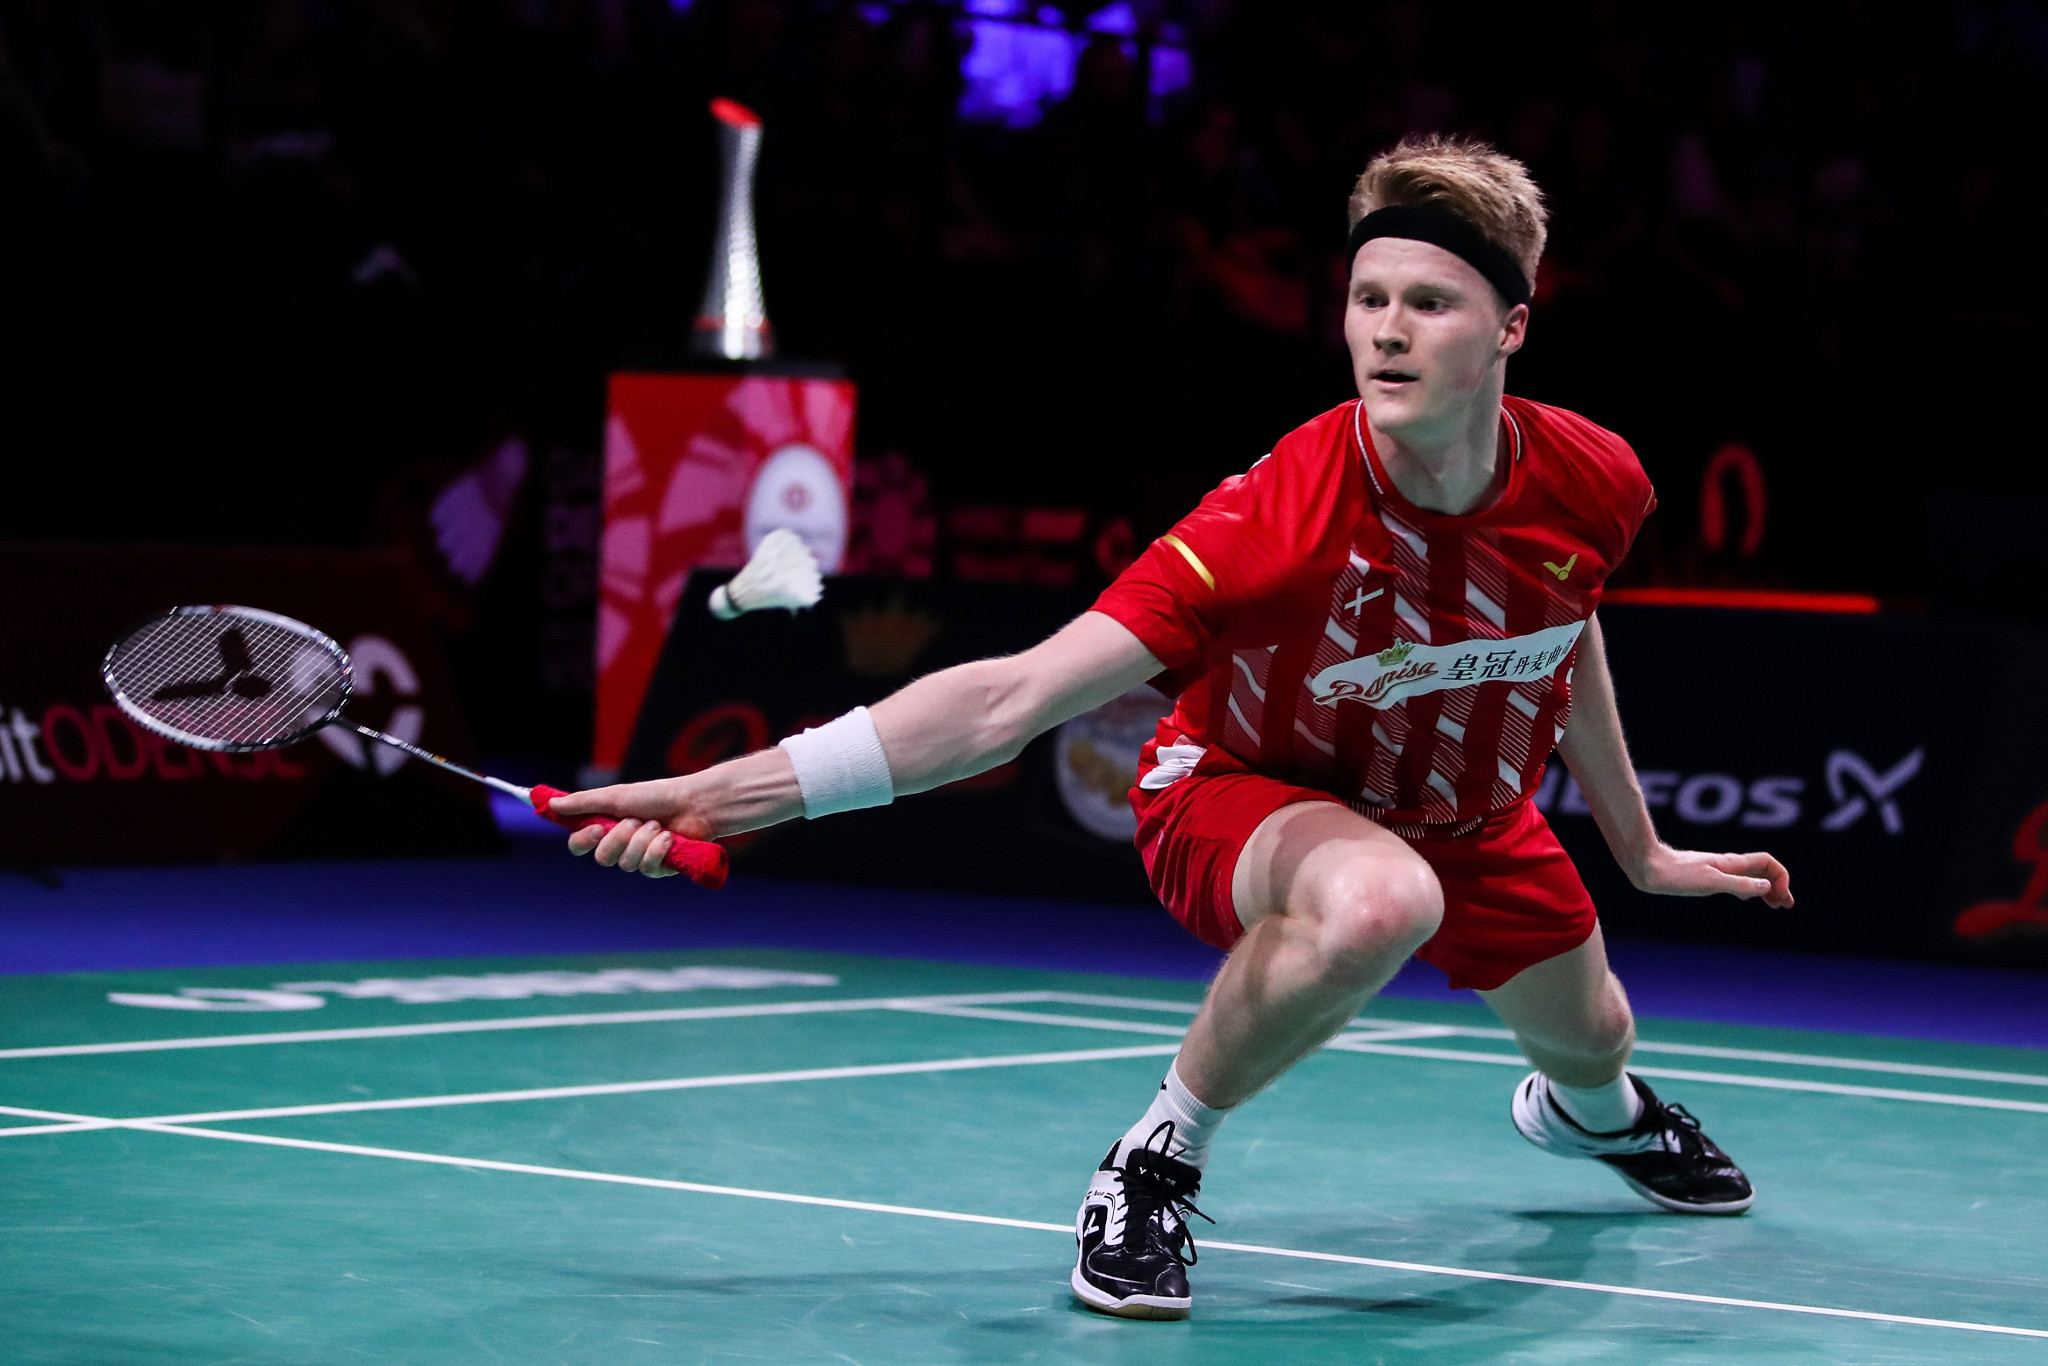 Denmark's Anders Antonsen looks in good form in China ©Getty Images